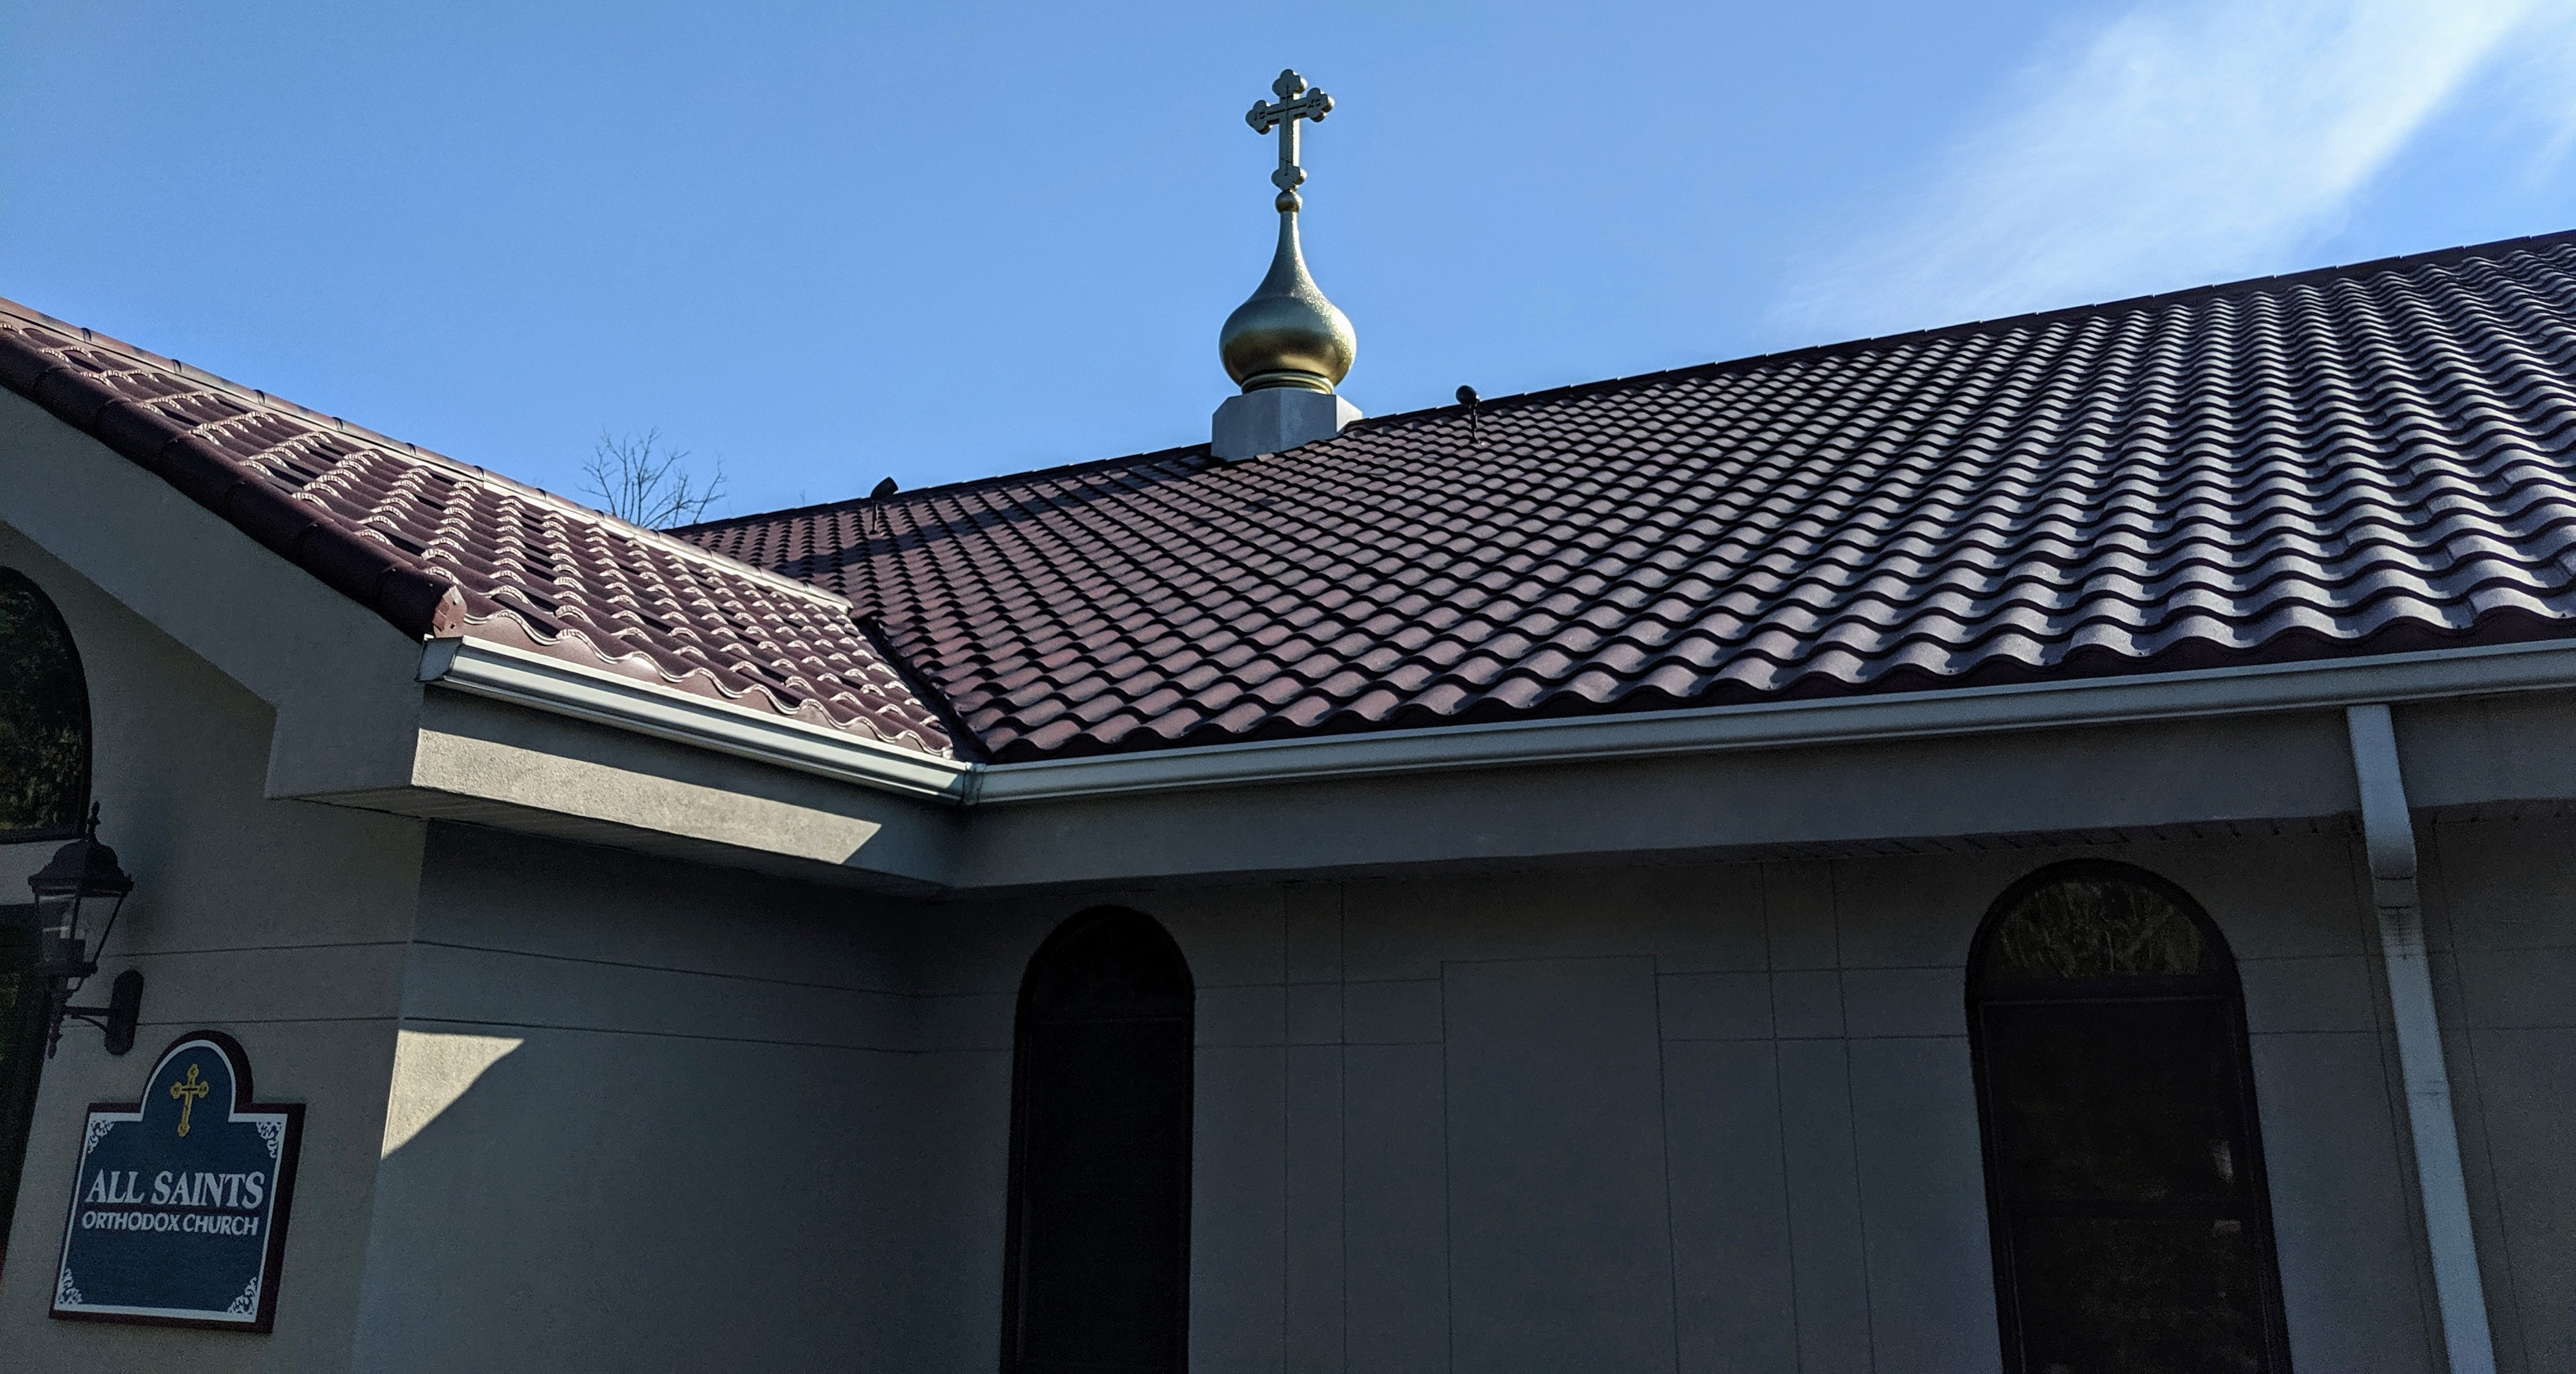 All Saints Orthodox Church - Top of Building